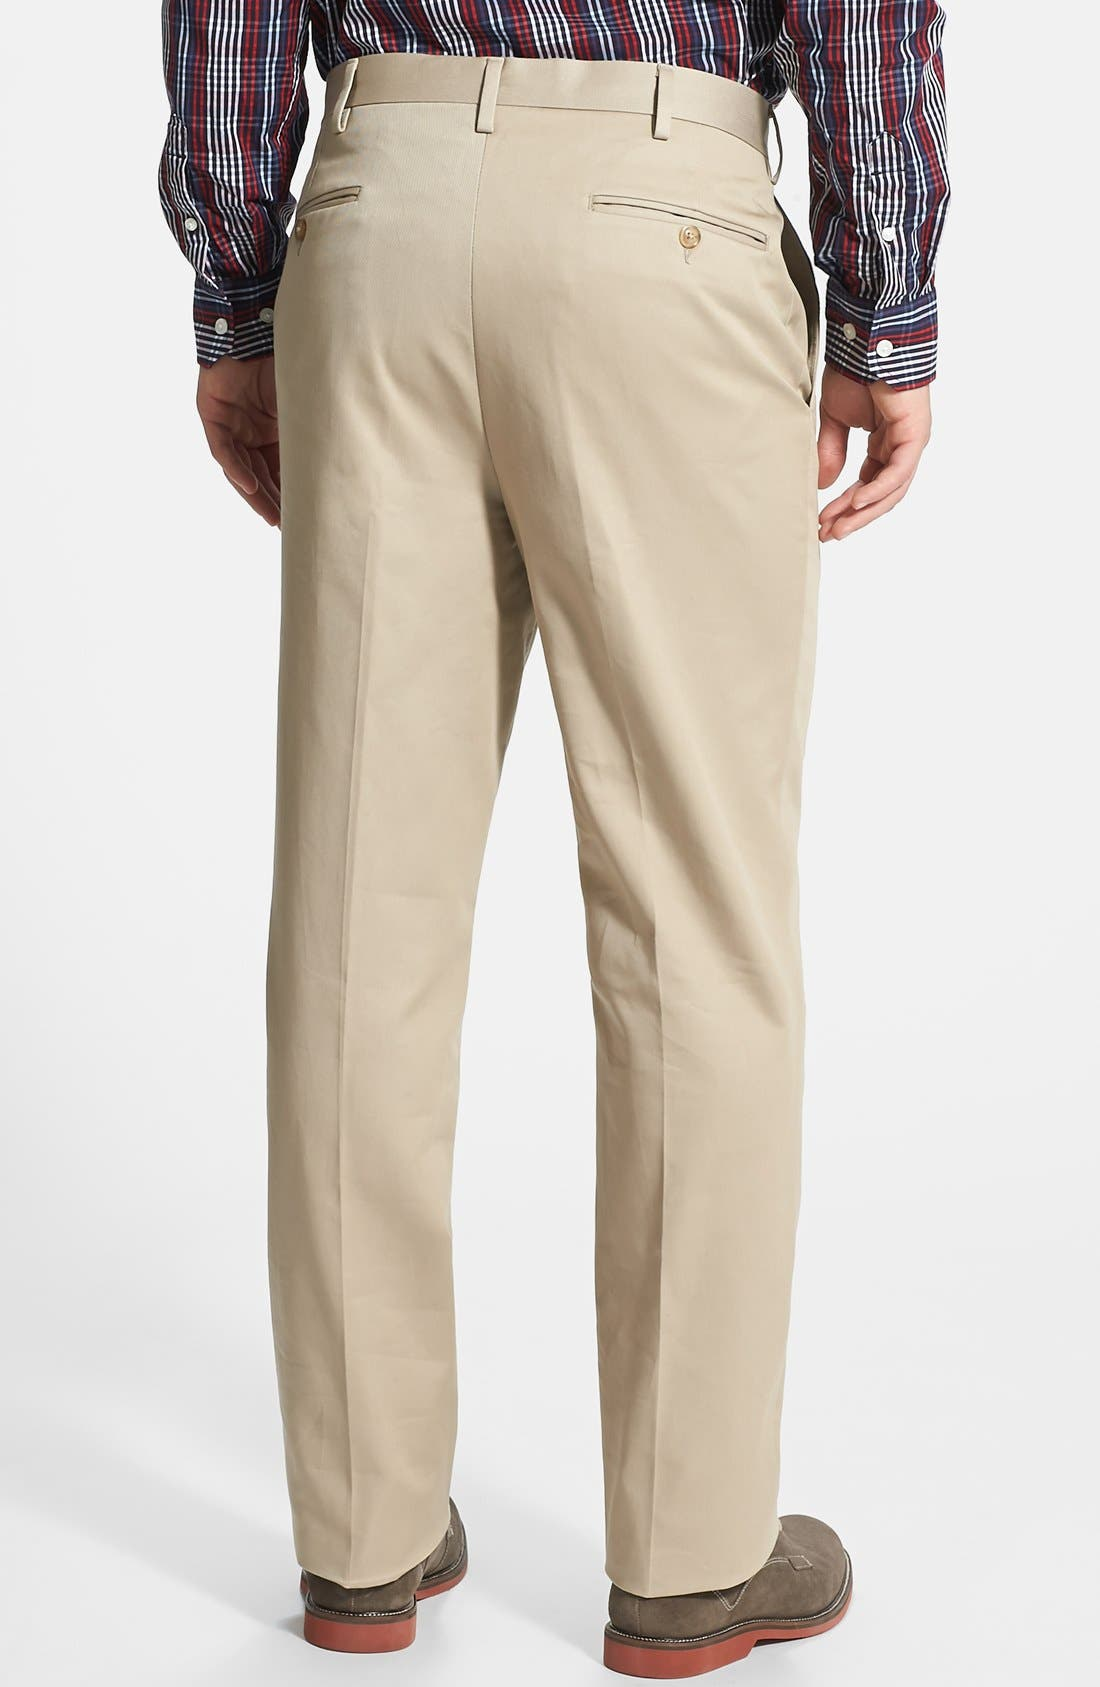 Flat Front Wrinkle Resistant Cotton Trousers,                             Alternate thumbnail 6, color,                             KHAKI